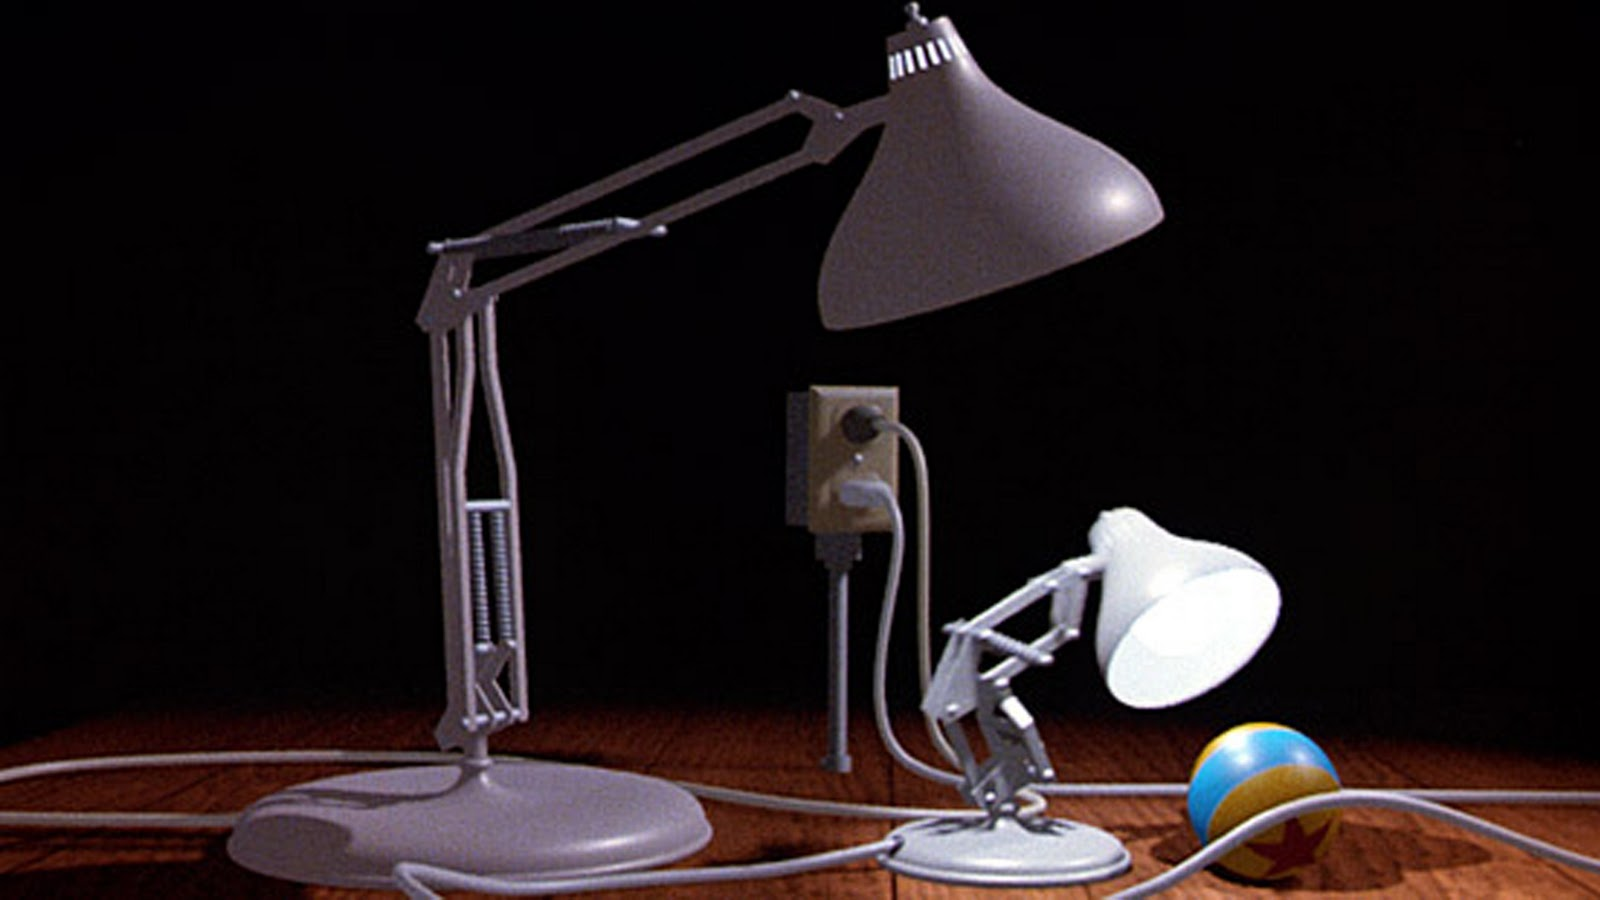 Luxo lamps in 'Luxo Jr.'